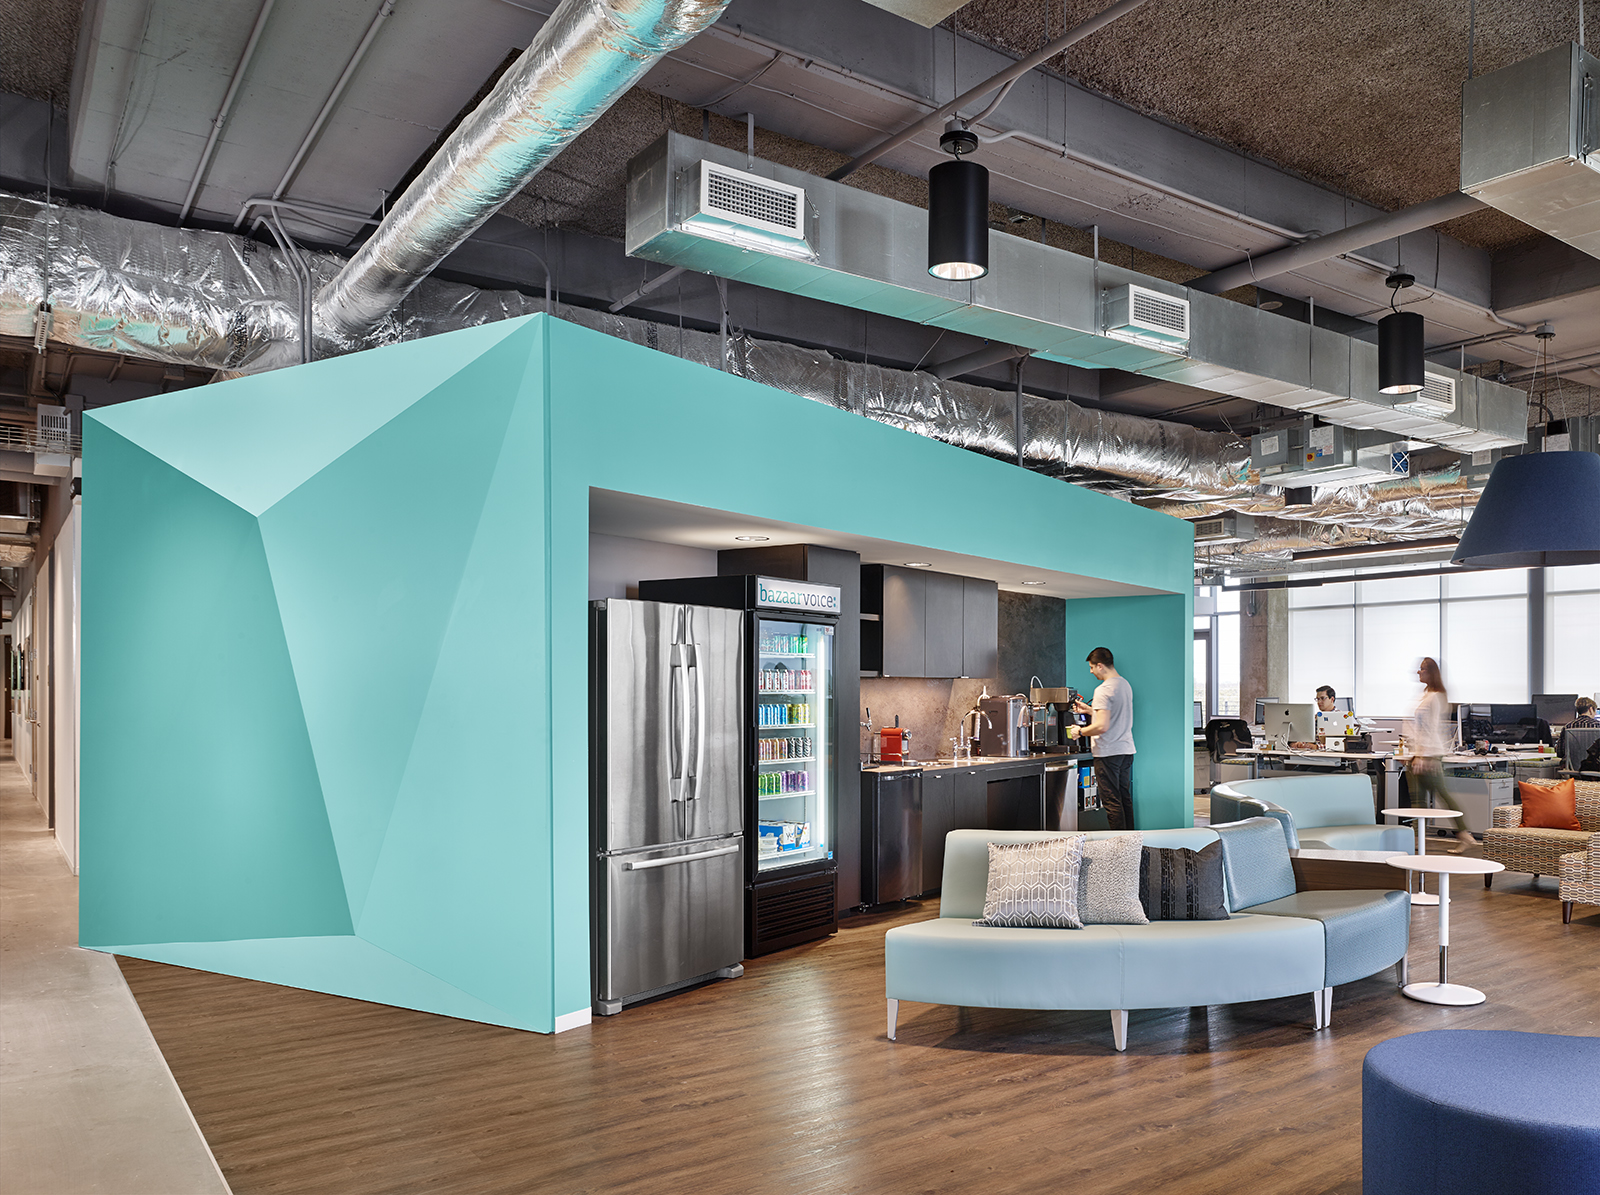 A Tour Of Bazaarvoice S Amazing Austin Headquarters Officelovin 39